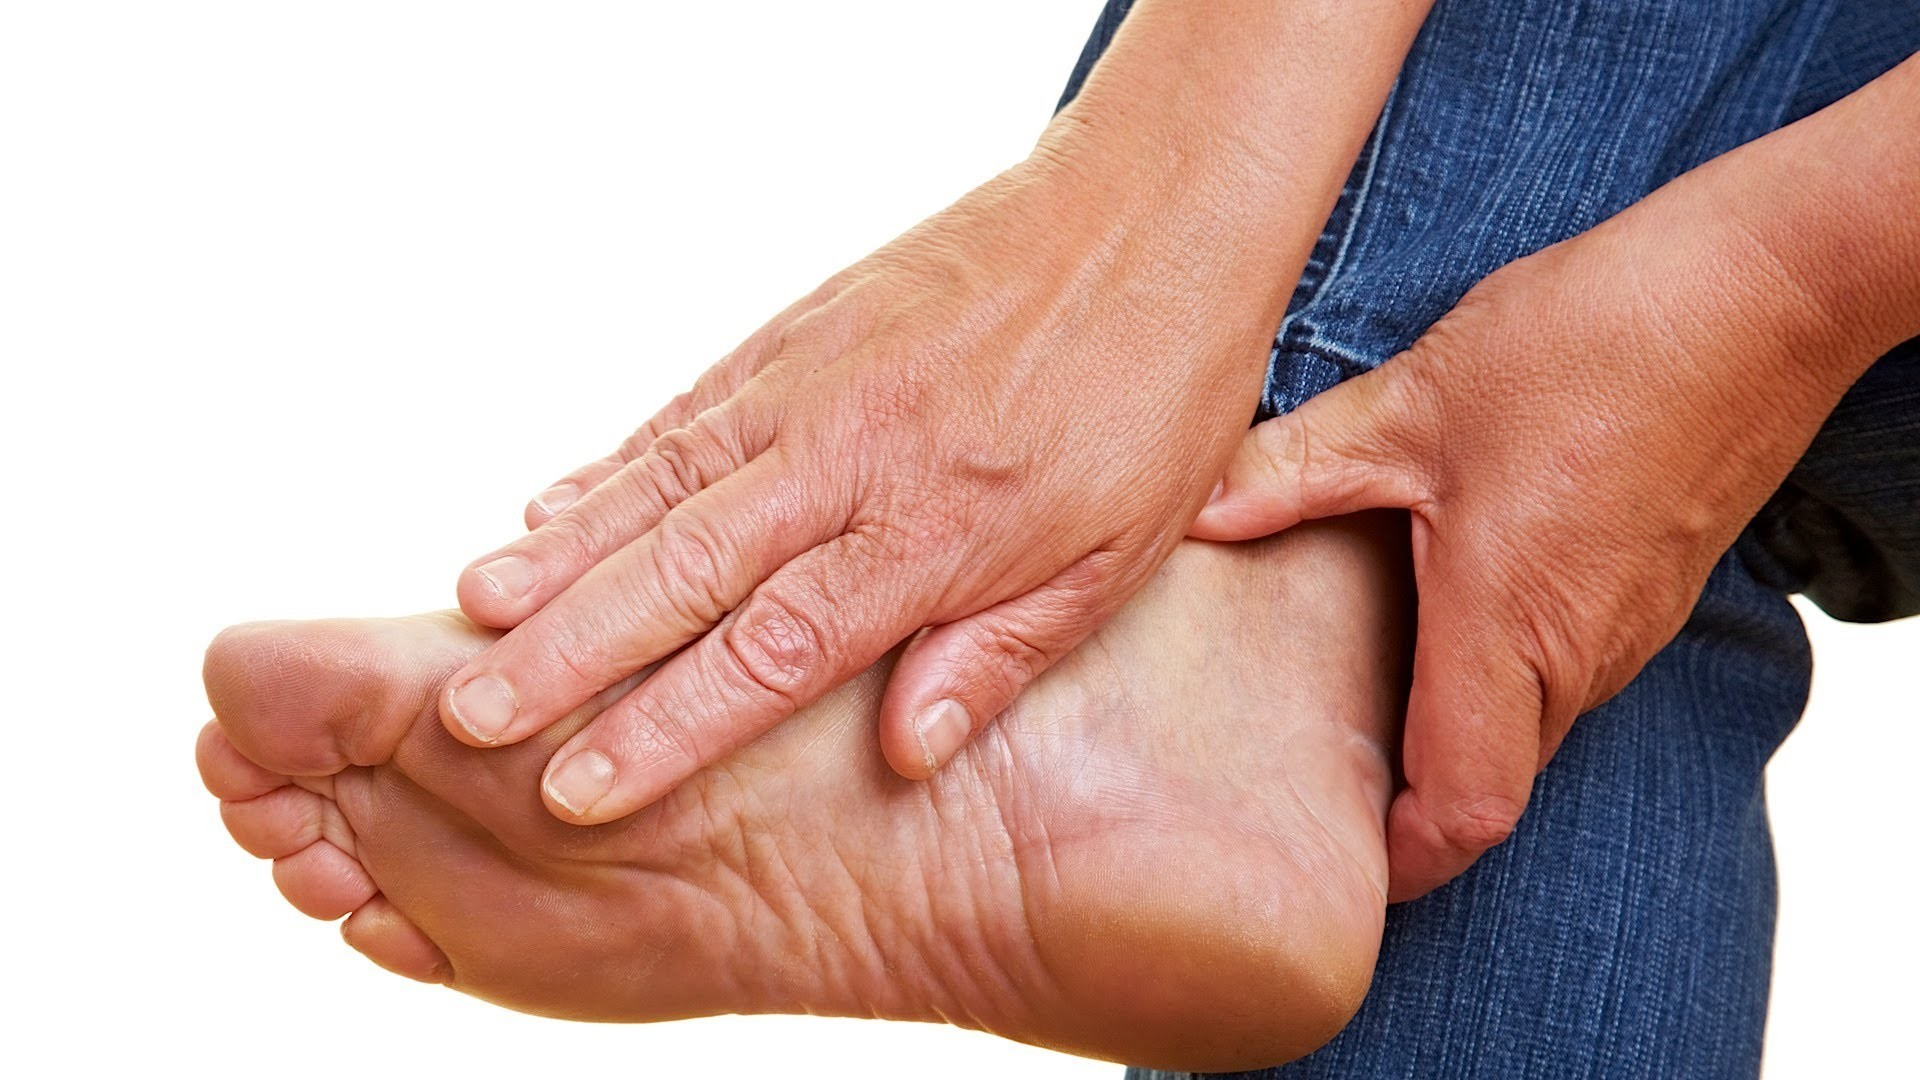 How to Prevent & Treat Gout | Foot Care